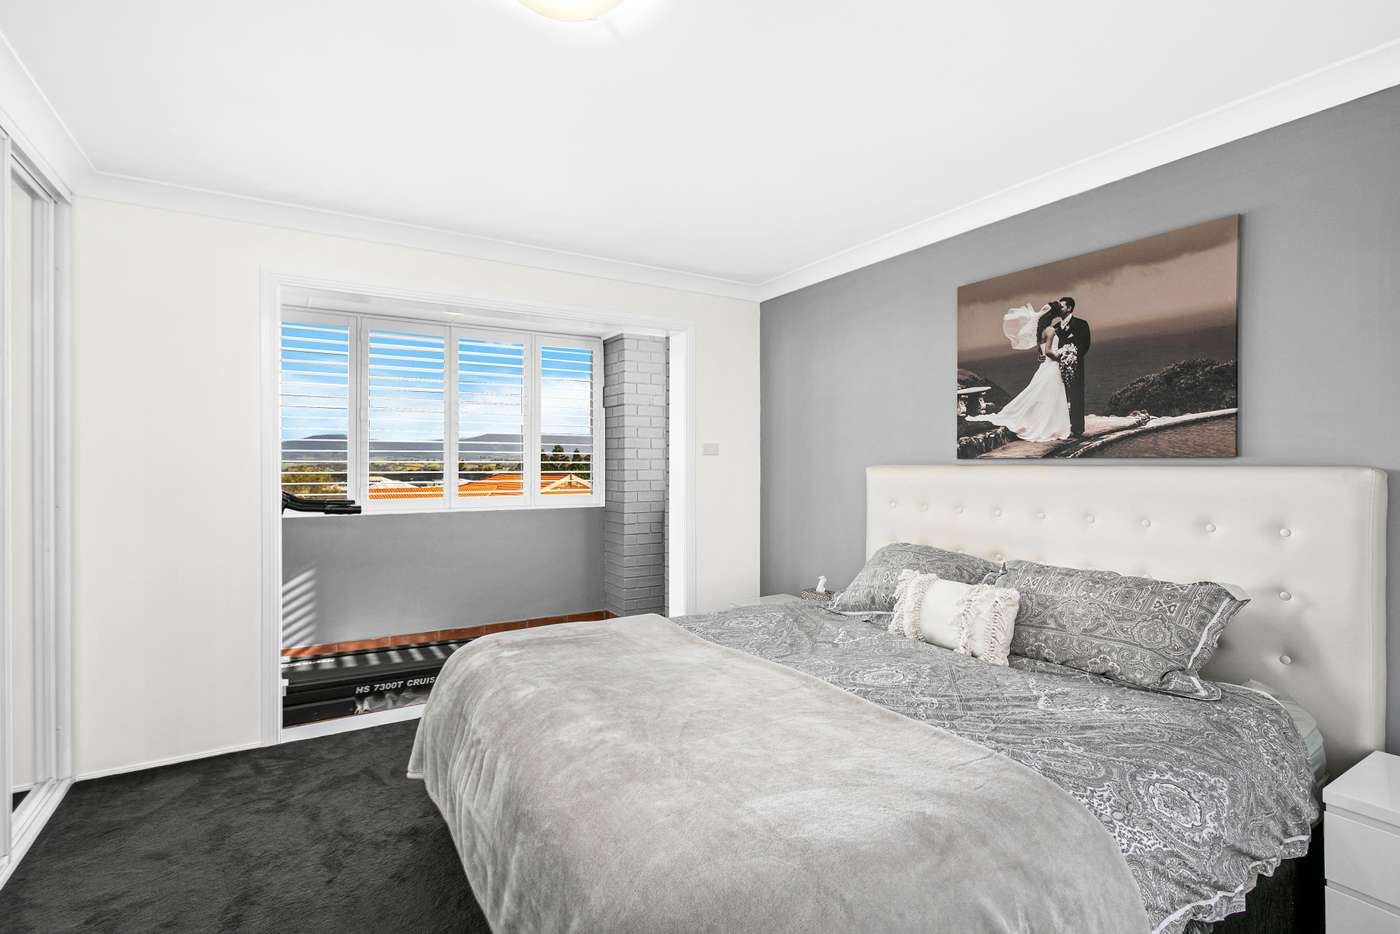 Sixth view of Homely house listing, 6 Gore Avenue, Shell Cove NSW 2529